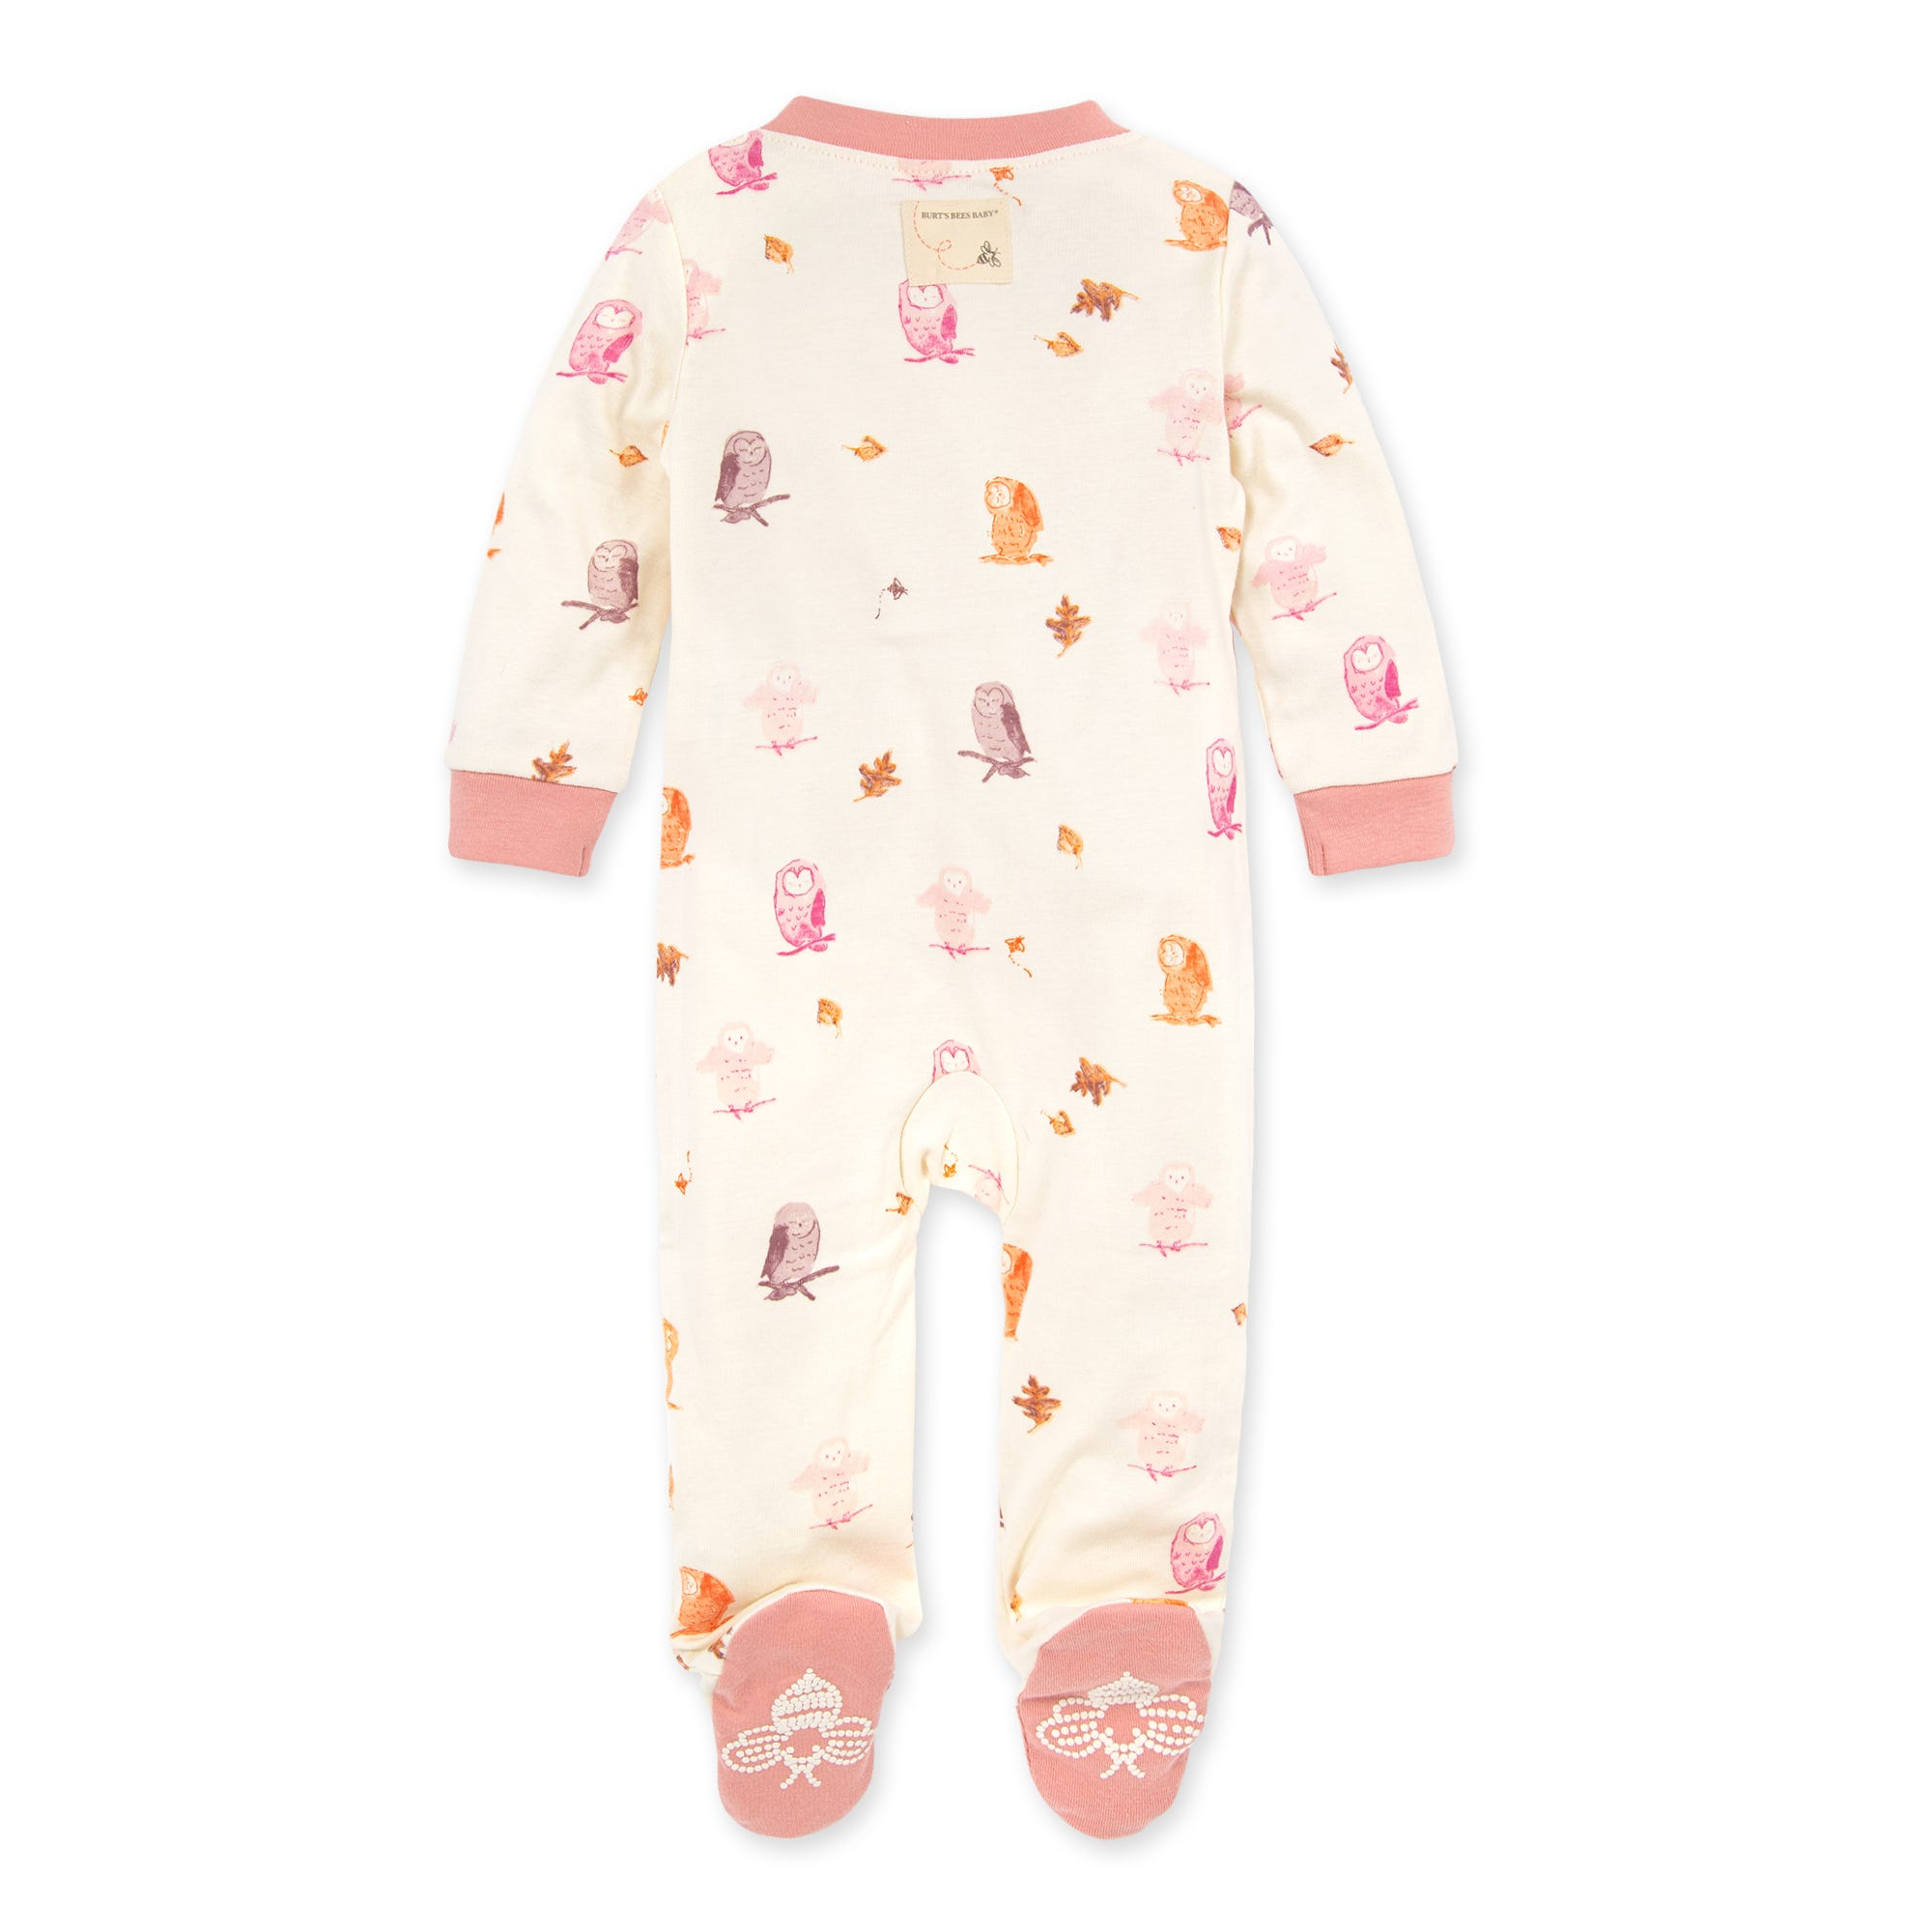 Burts Bees Baby Baby Sleep /& Play Organic Pajamas Botanical Gardens NB-9M One-Piece Zip Up Footed PJ Jumpsuit 3-6 Months